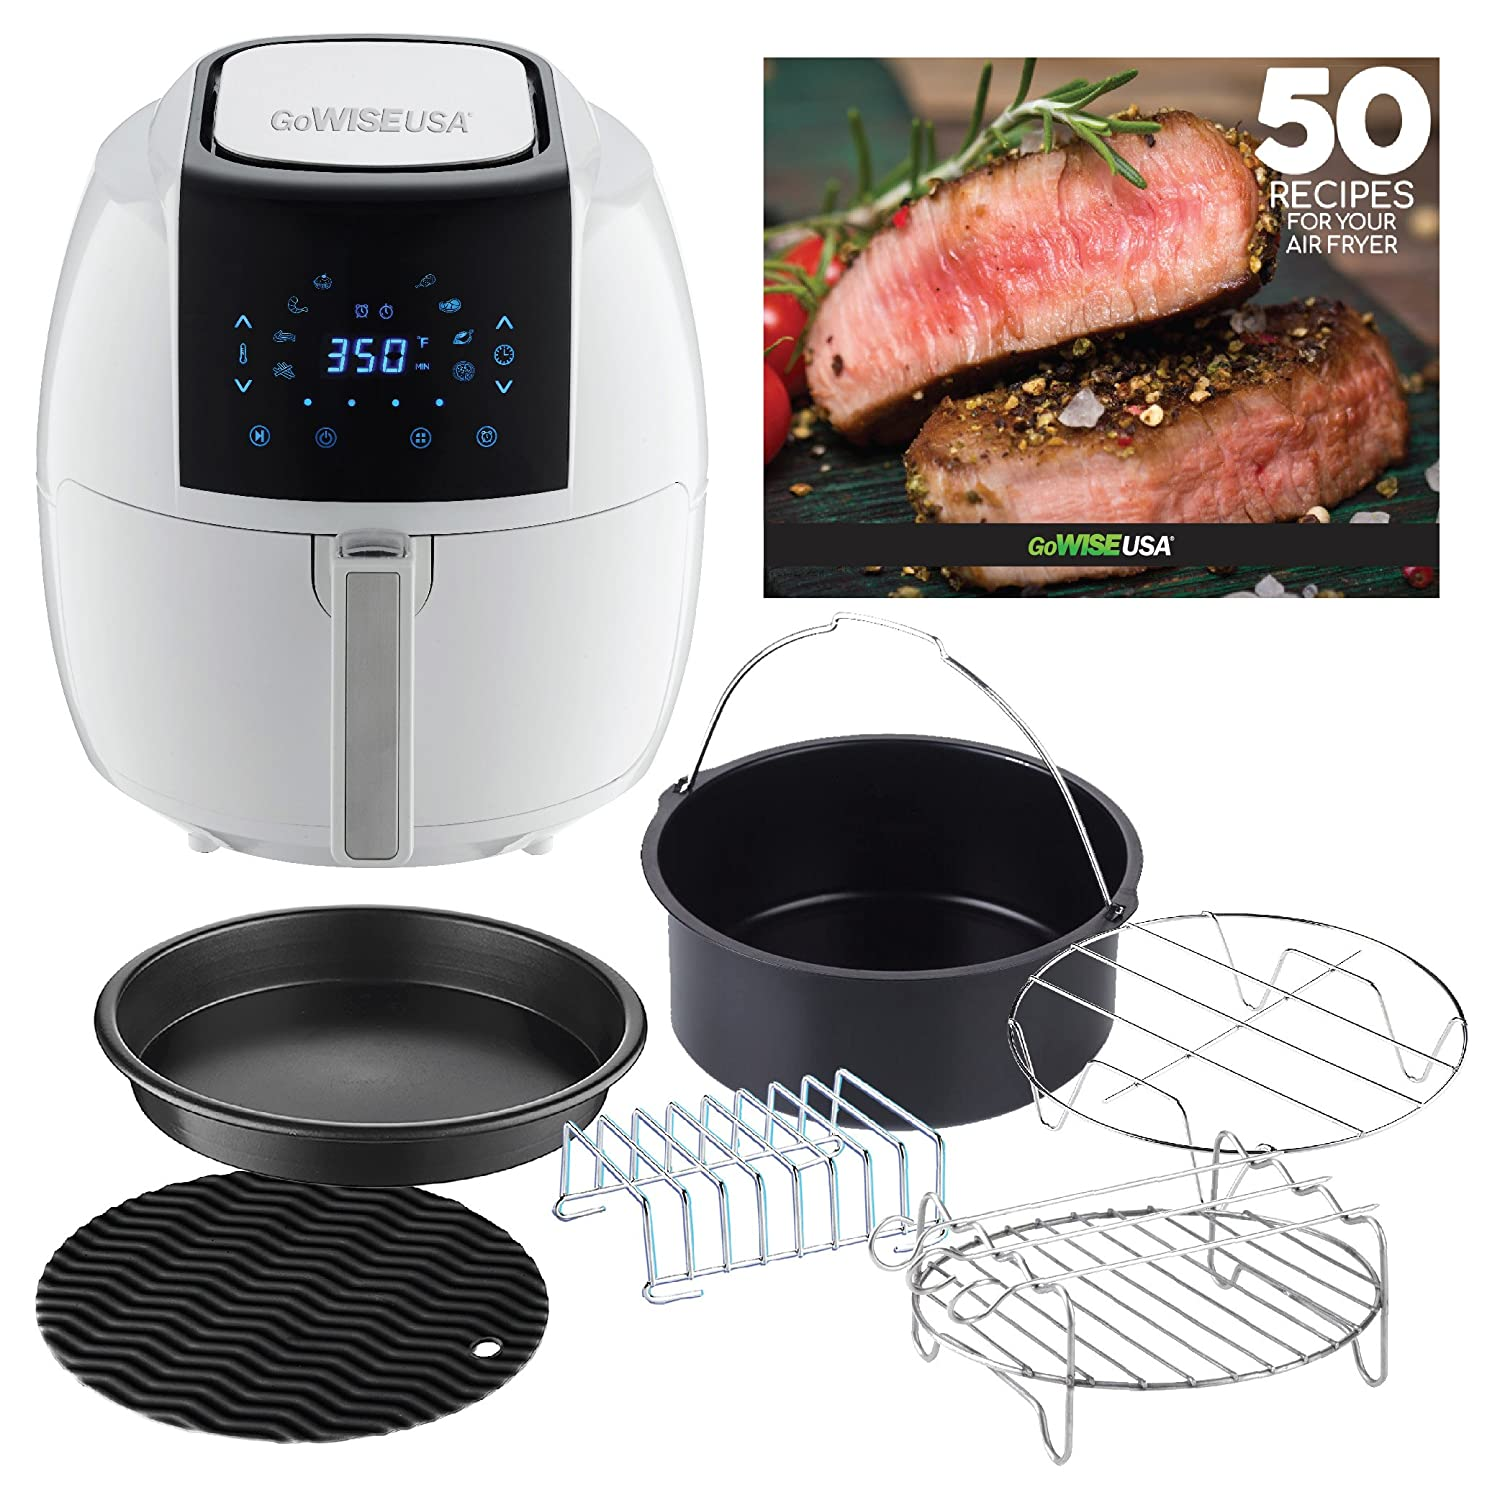 GoWISE USA 5.8-Quarts 8-in-1 Digital Air Fryer XL with 6-piece Air Fryer Accessory Kit + 50 Recipes for your Air Fryer Cookbook (White)